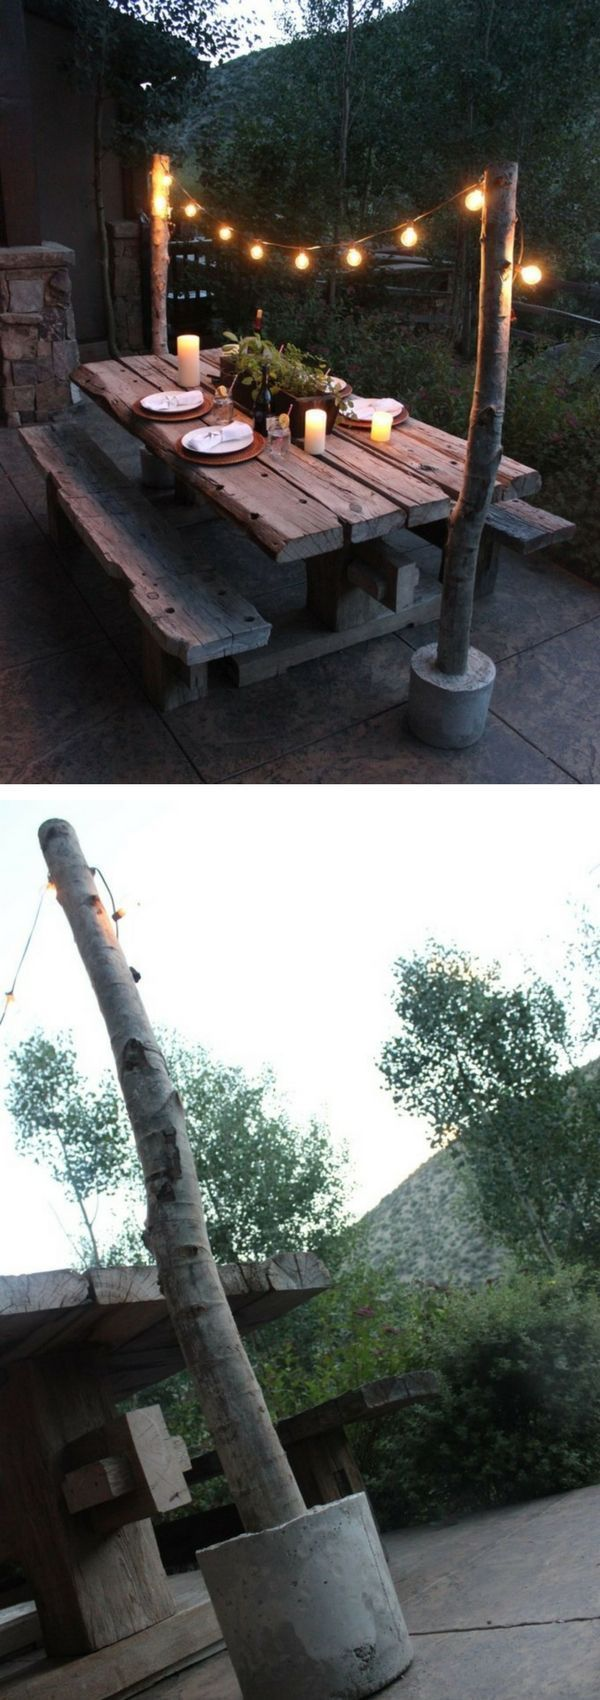 30 backyard lighting ideas and a stunning courtyard will interest you – Balcony Design> 25+ – Outdoor diy decorations